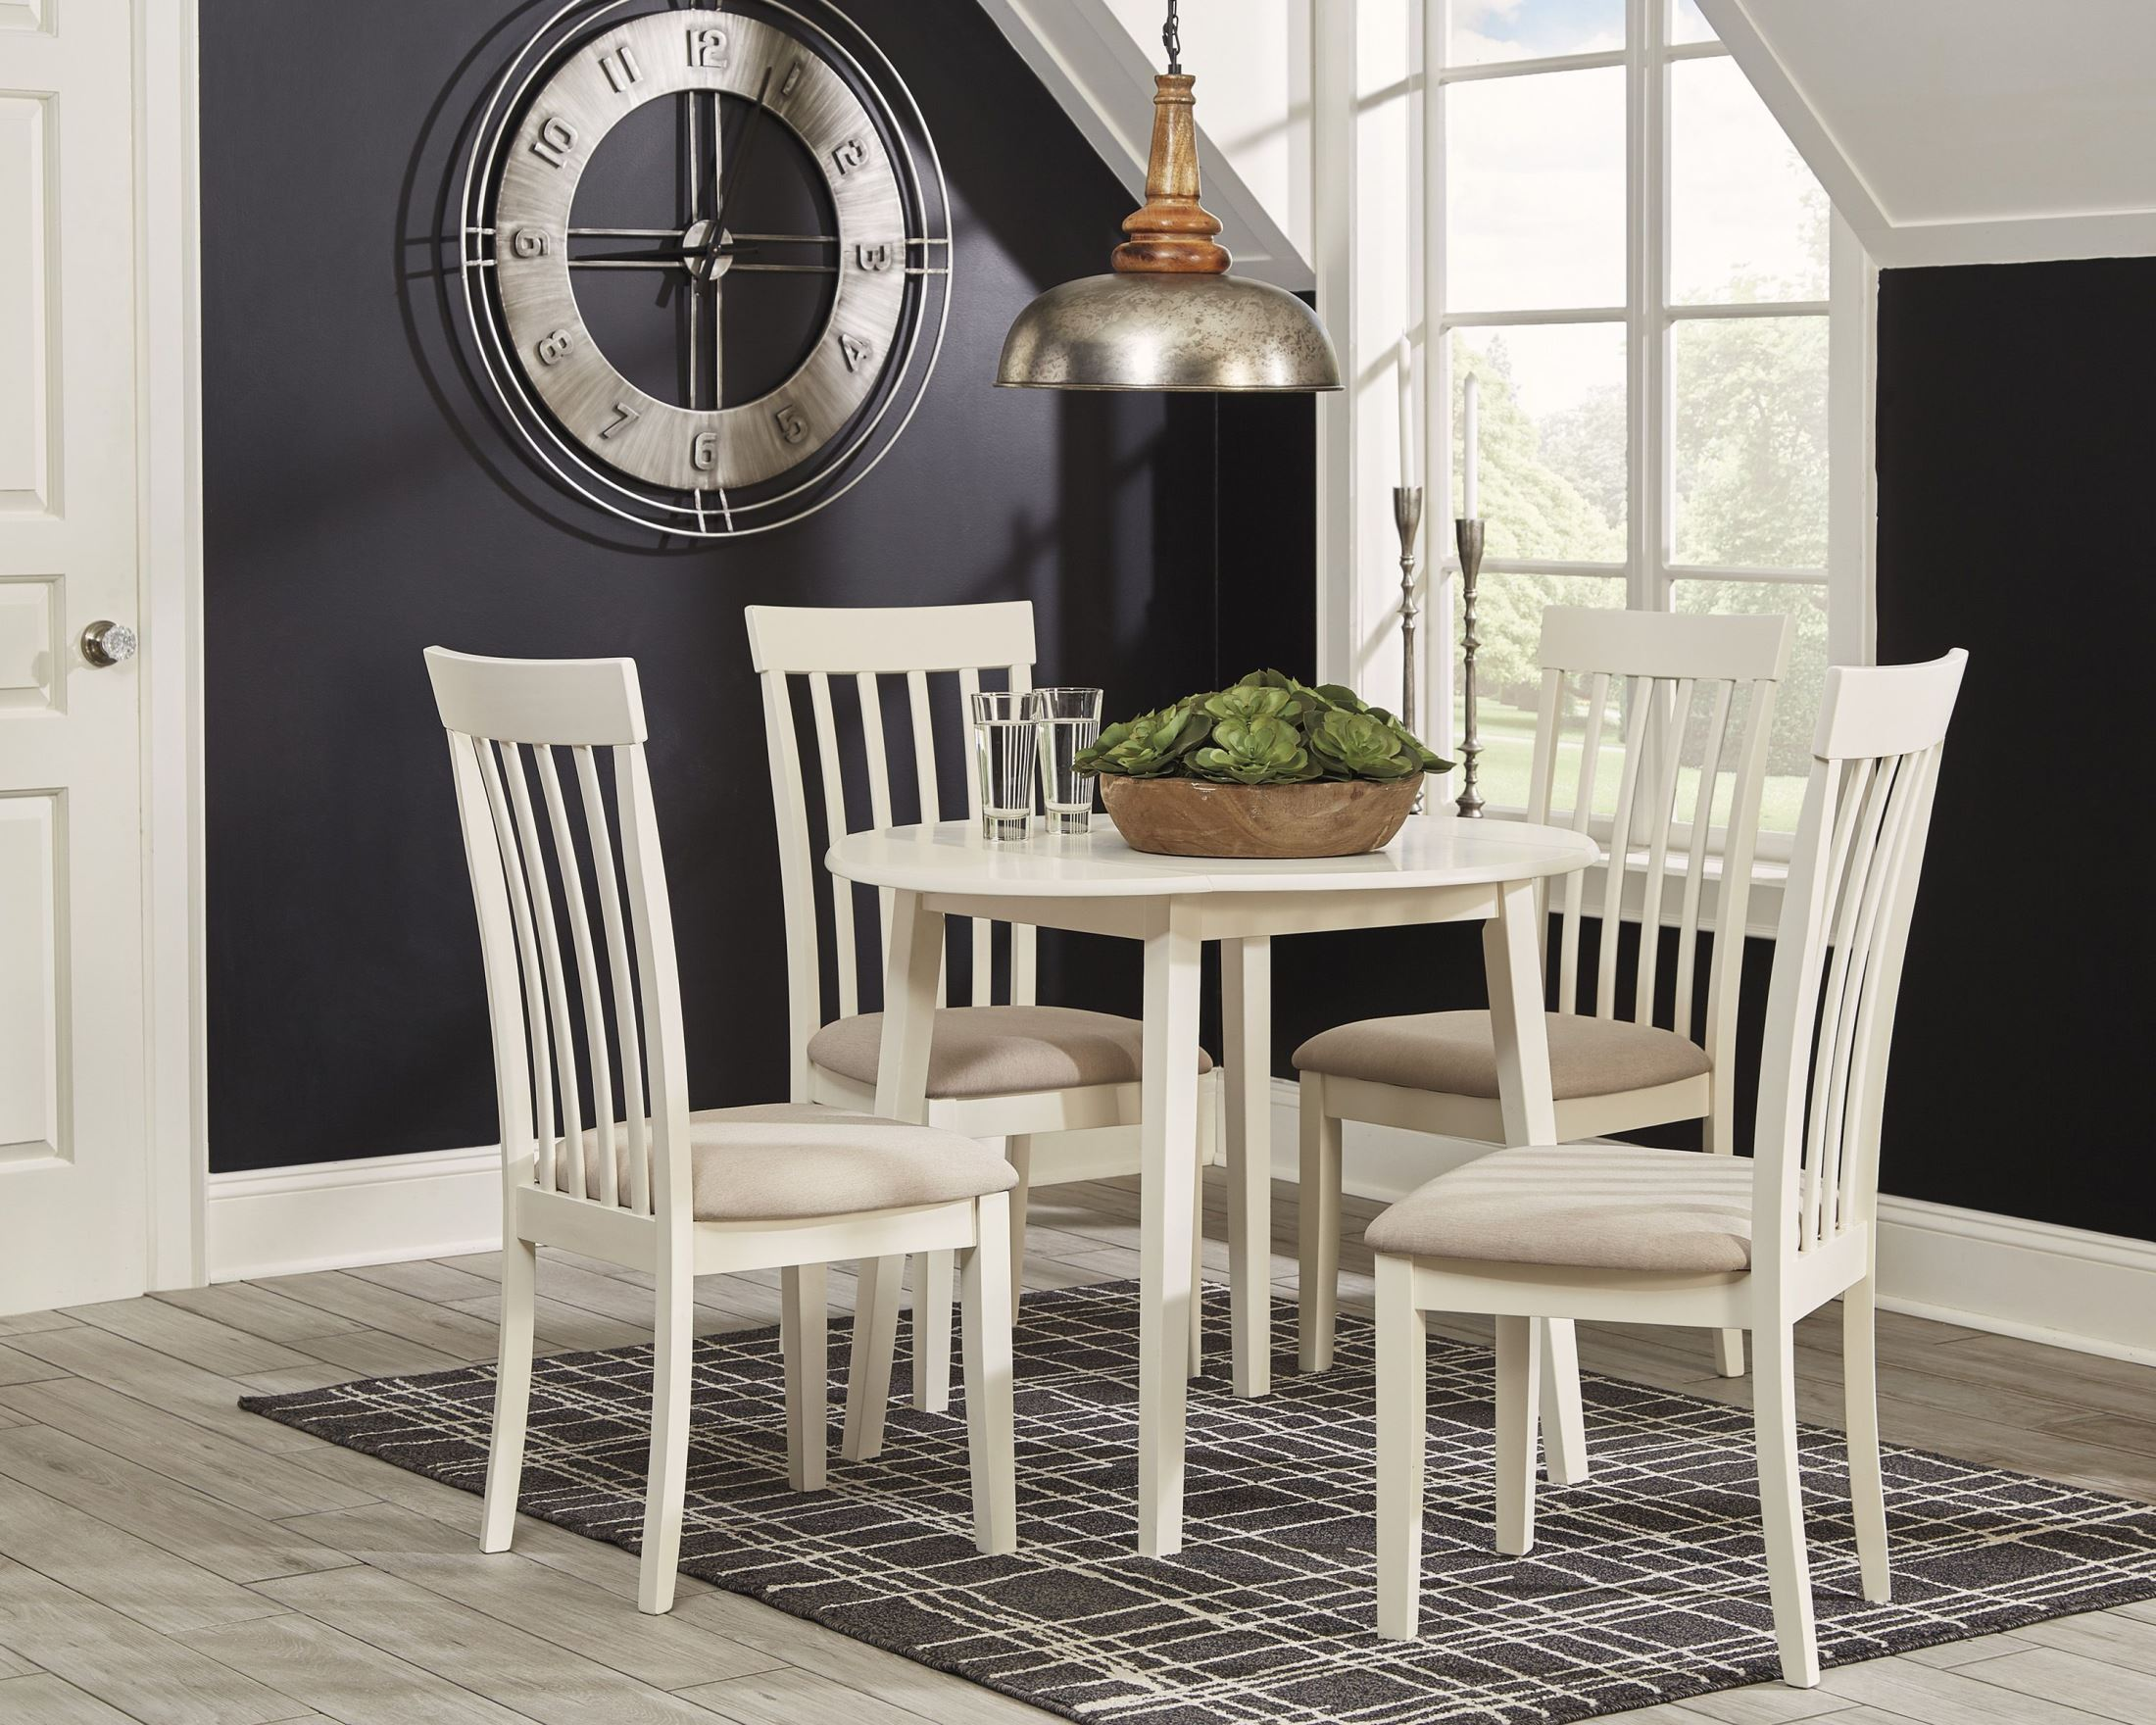 Slannery White Round Drop Leaf Dining Room Set